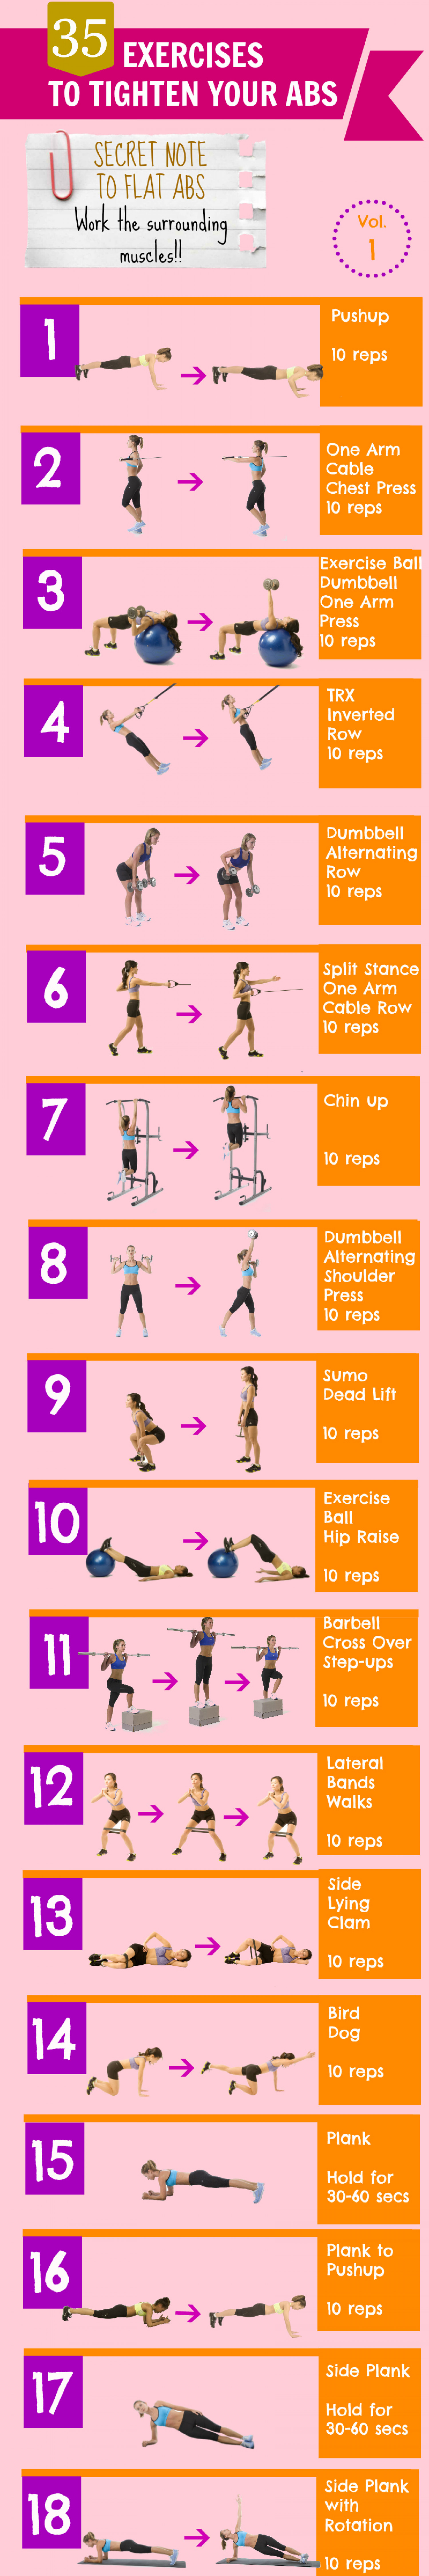 35 Exercises to Tighten Your Abs. Vol. 1 Infographic